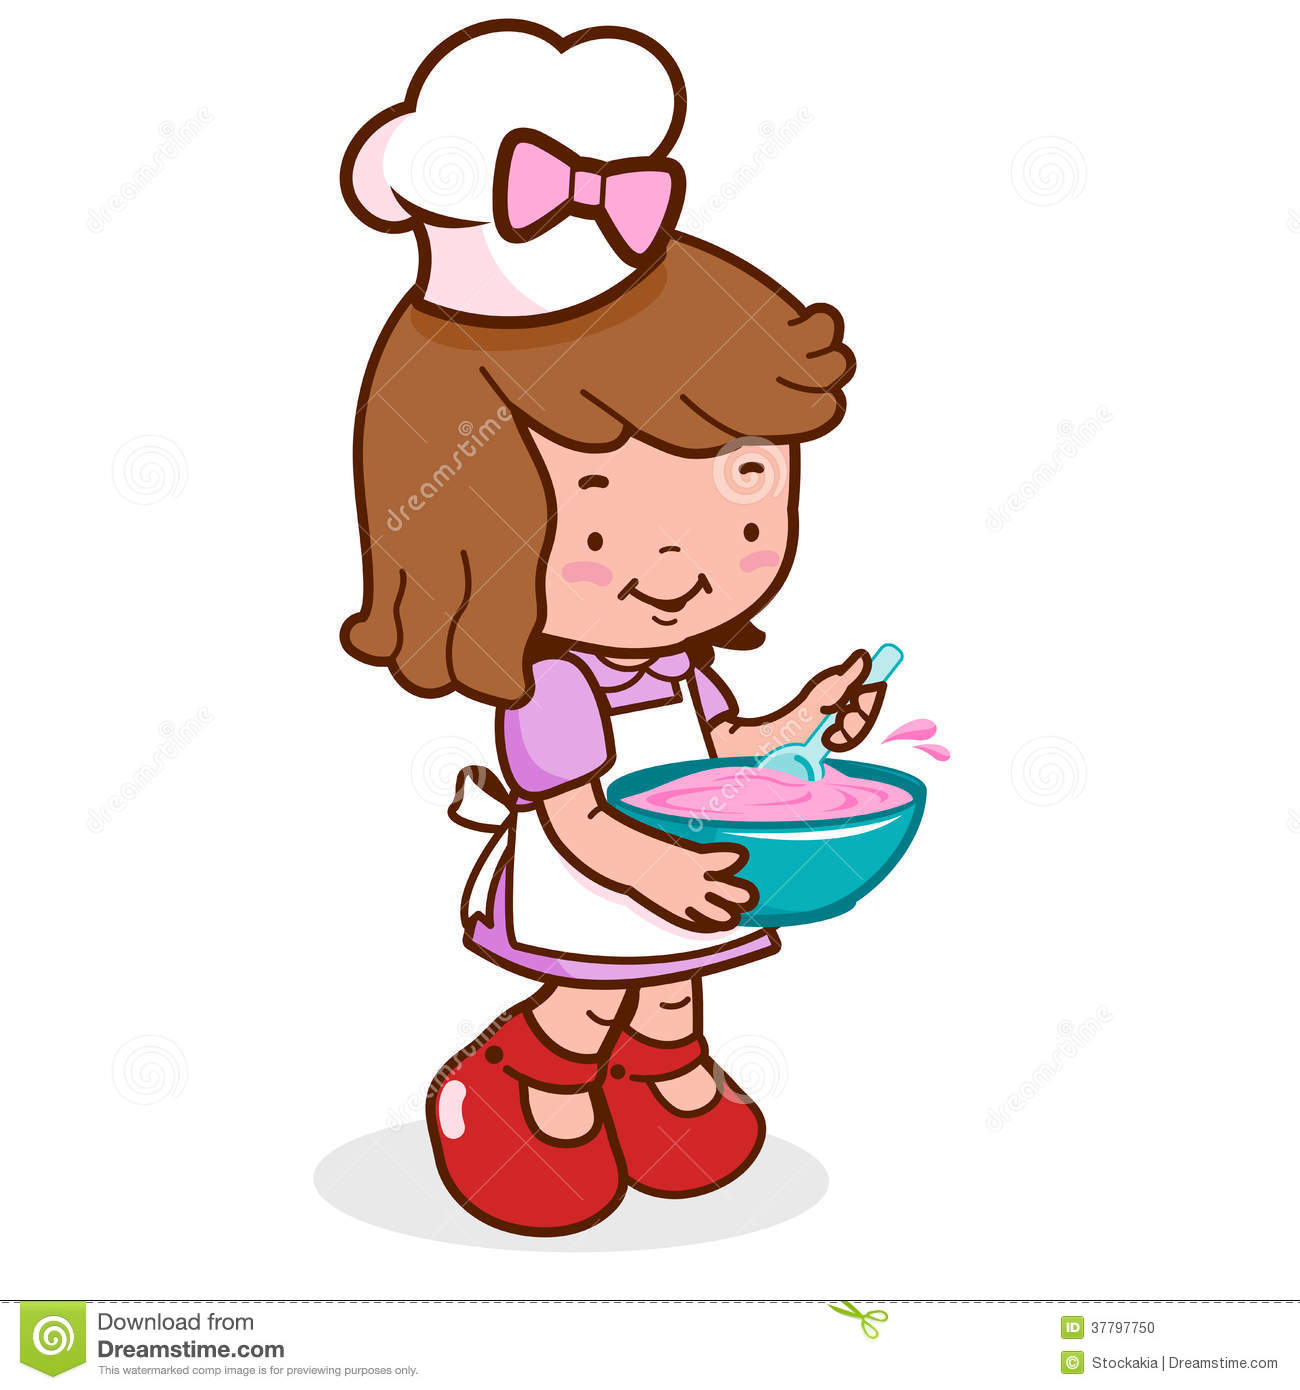 Girl cooking clipart banner royalty free download Girl Chef Clipart | Free download best Girl Chef Clipart on ... banner royalty free download